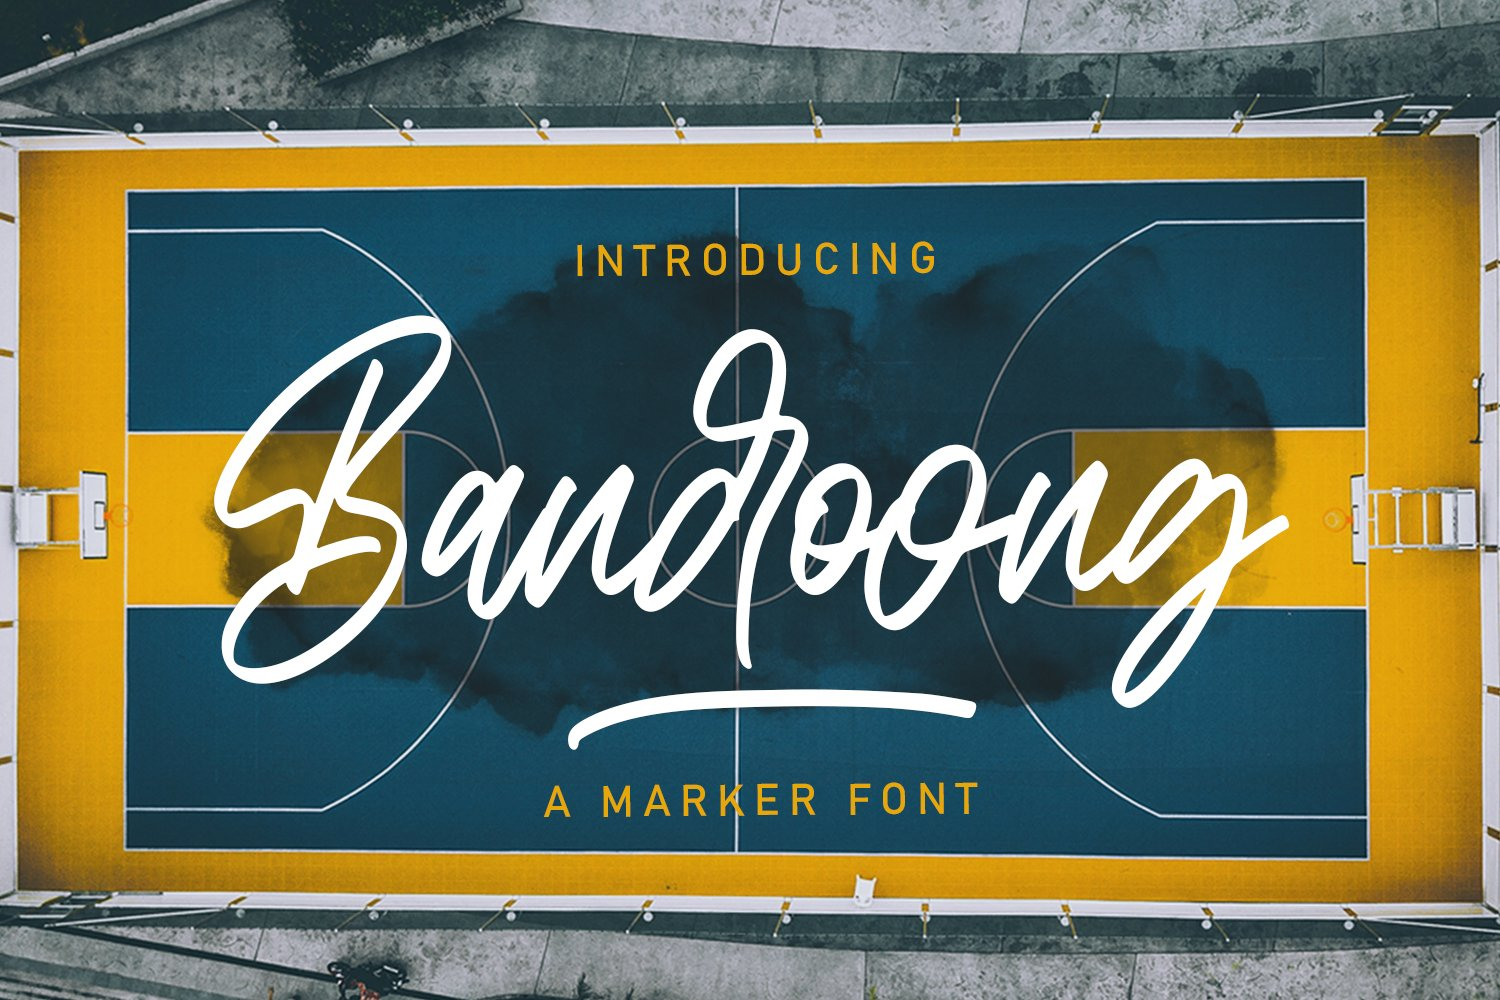 Bandoong | Modern Script Font example image 1